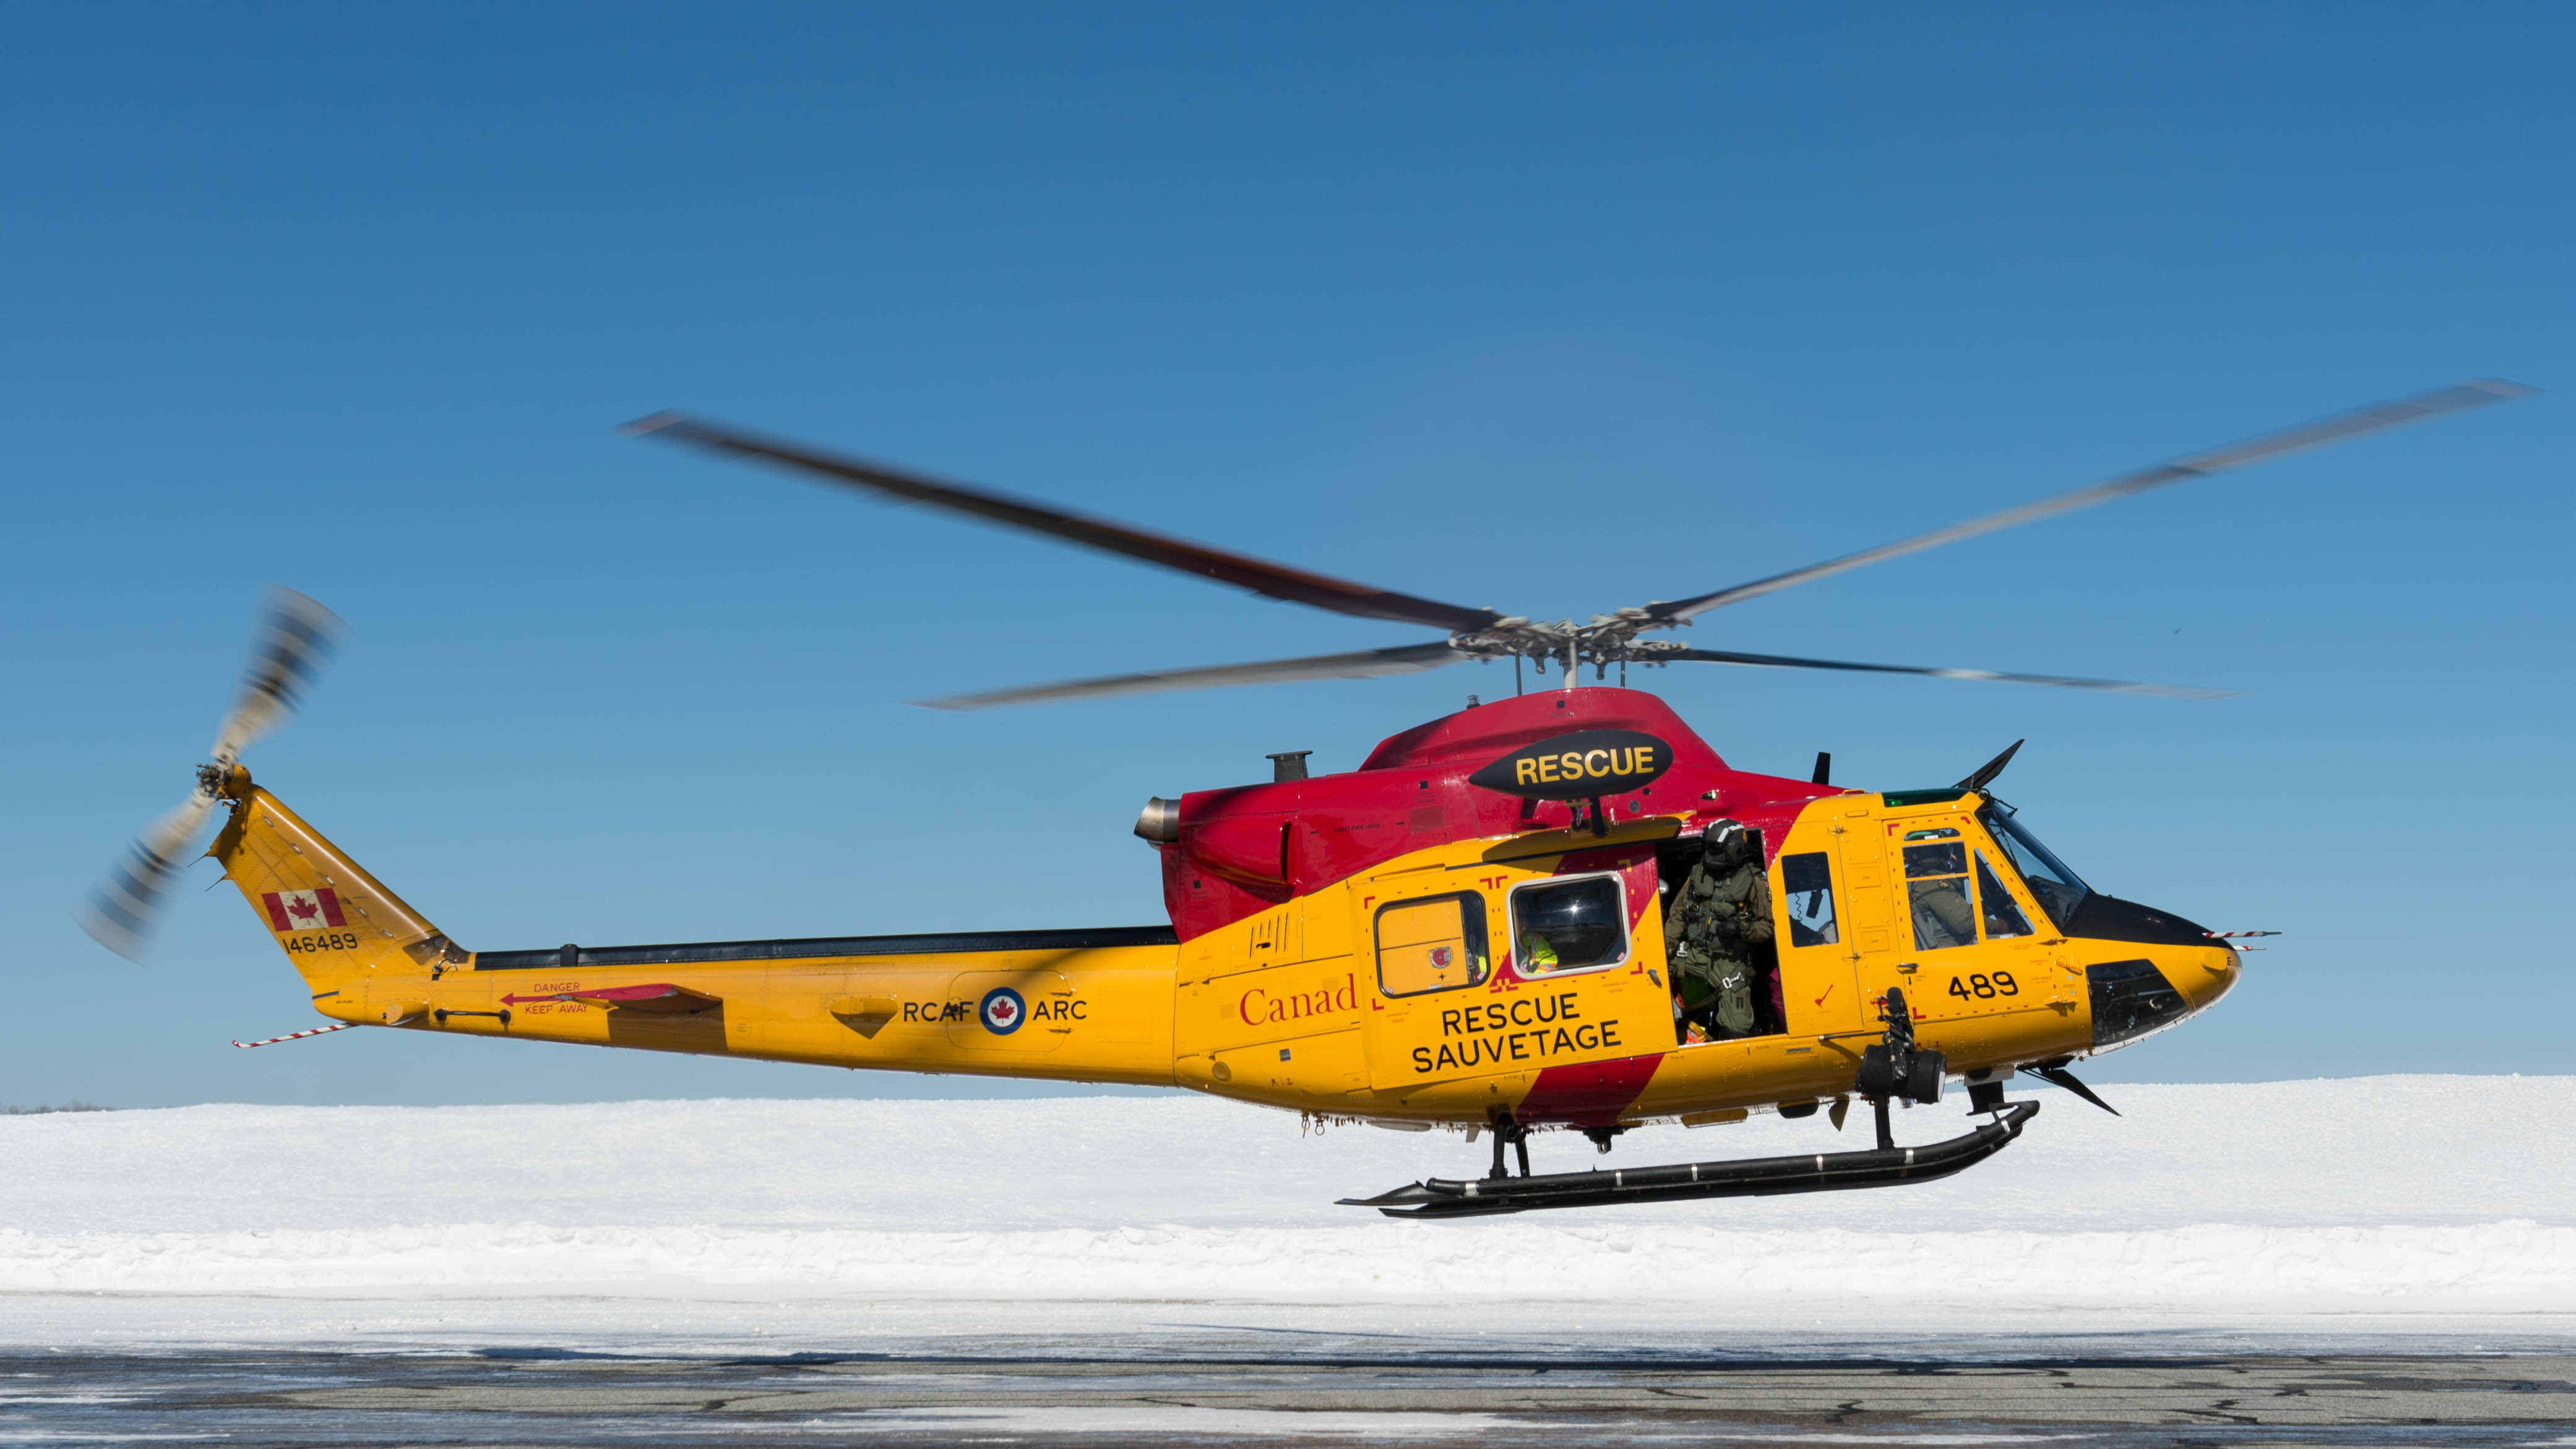 A search and rescue CH-146 Griffon helicopter takes off to participate in a search in the Timmins, Ontario, region on March 9, 2019. PHOTO: Corporal Zebulon Salmaniw